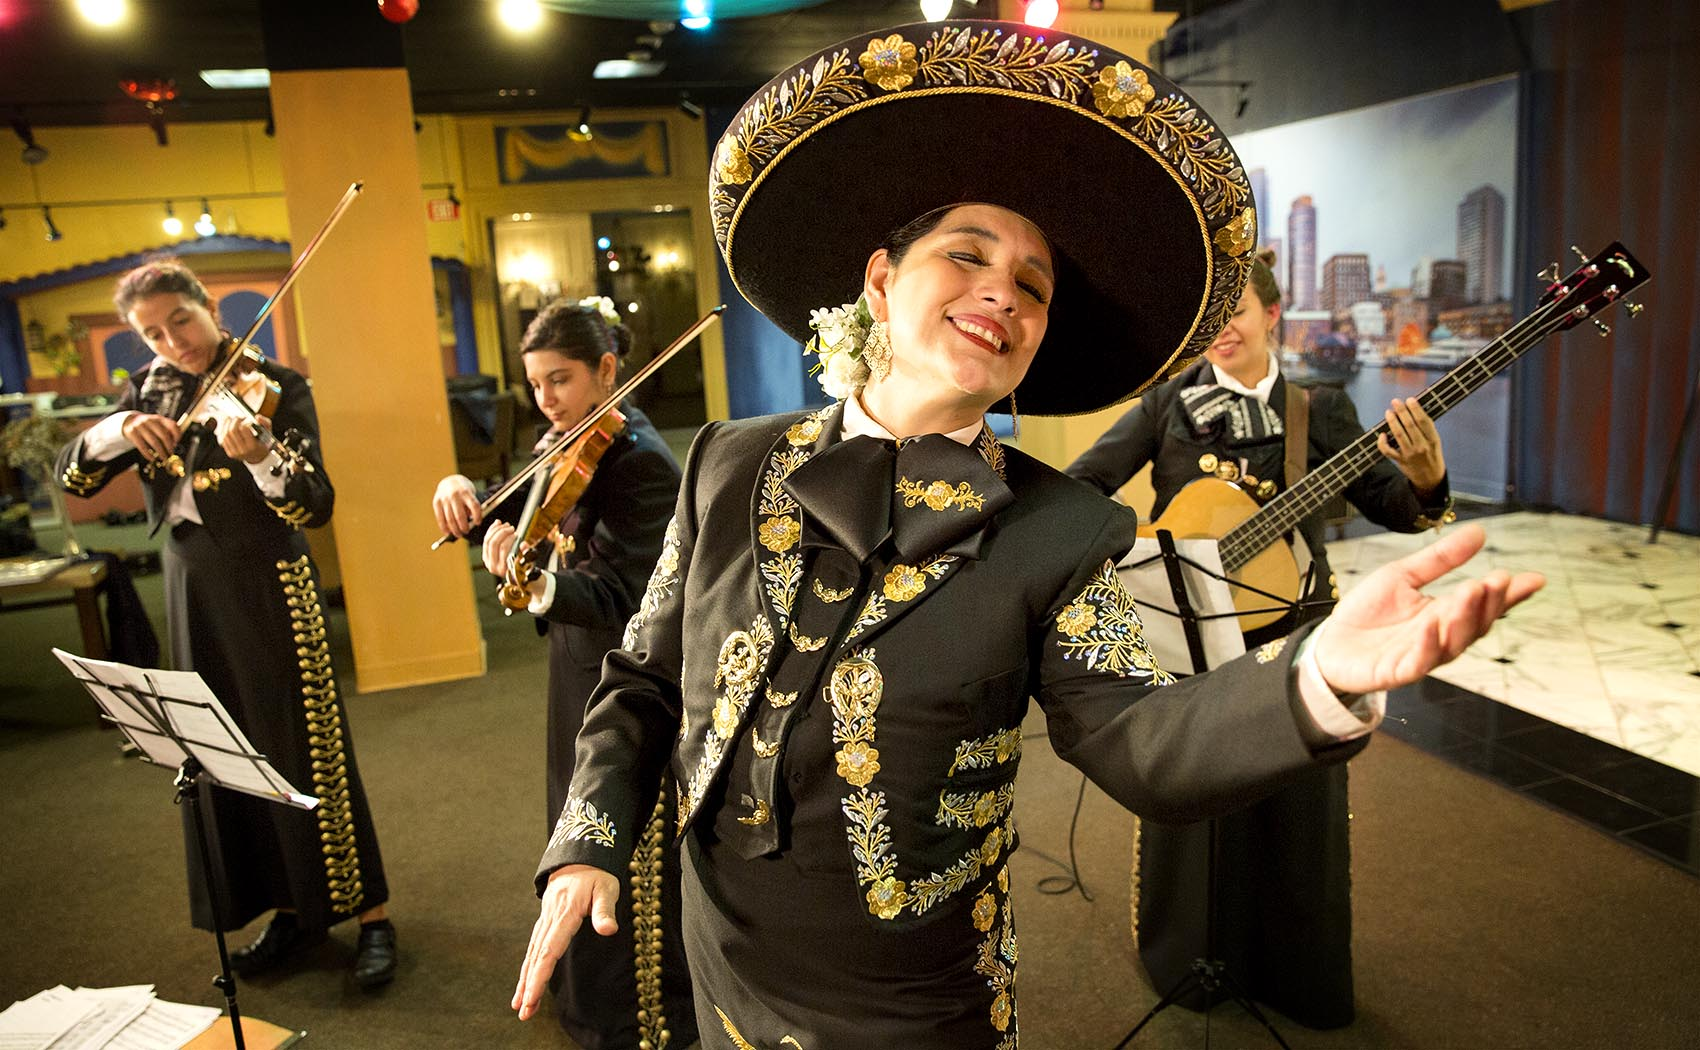 Veronica Robles rehearsing with her mariachi band in East Boston. (Robin Lubbock/WBUR)